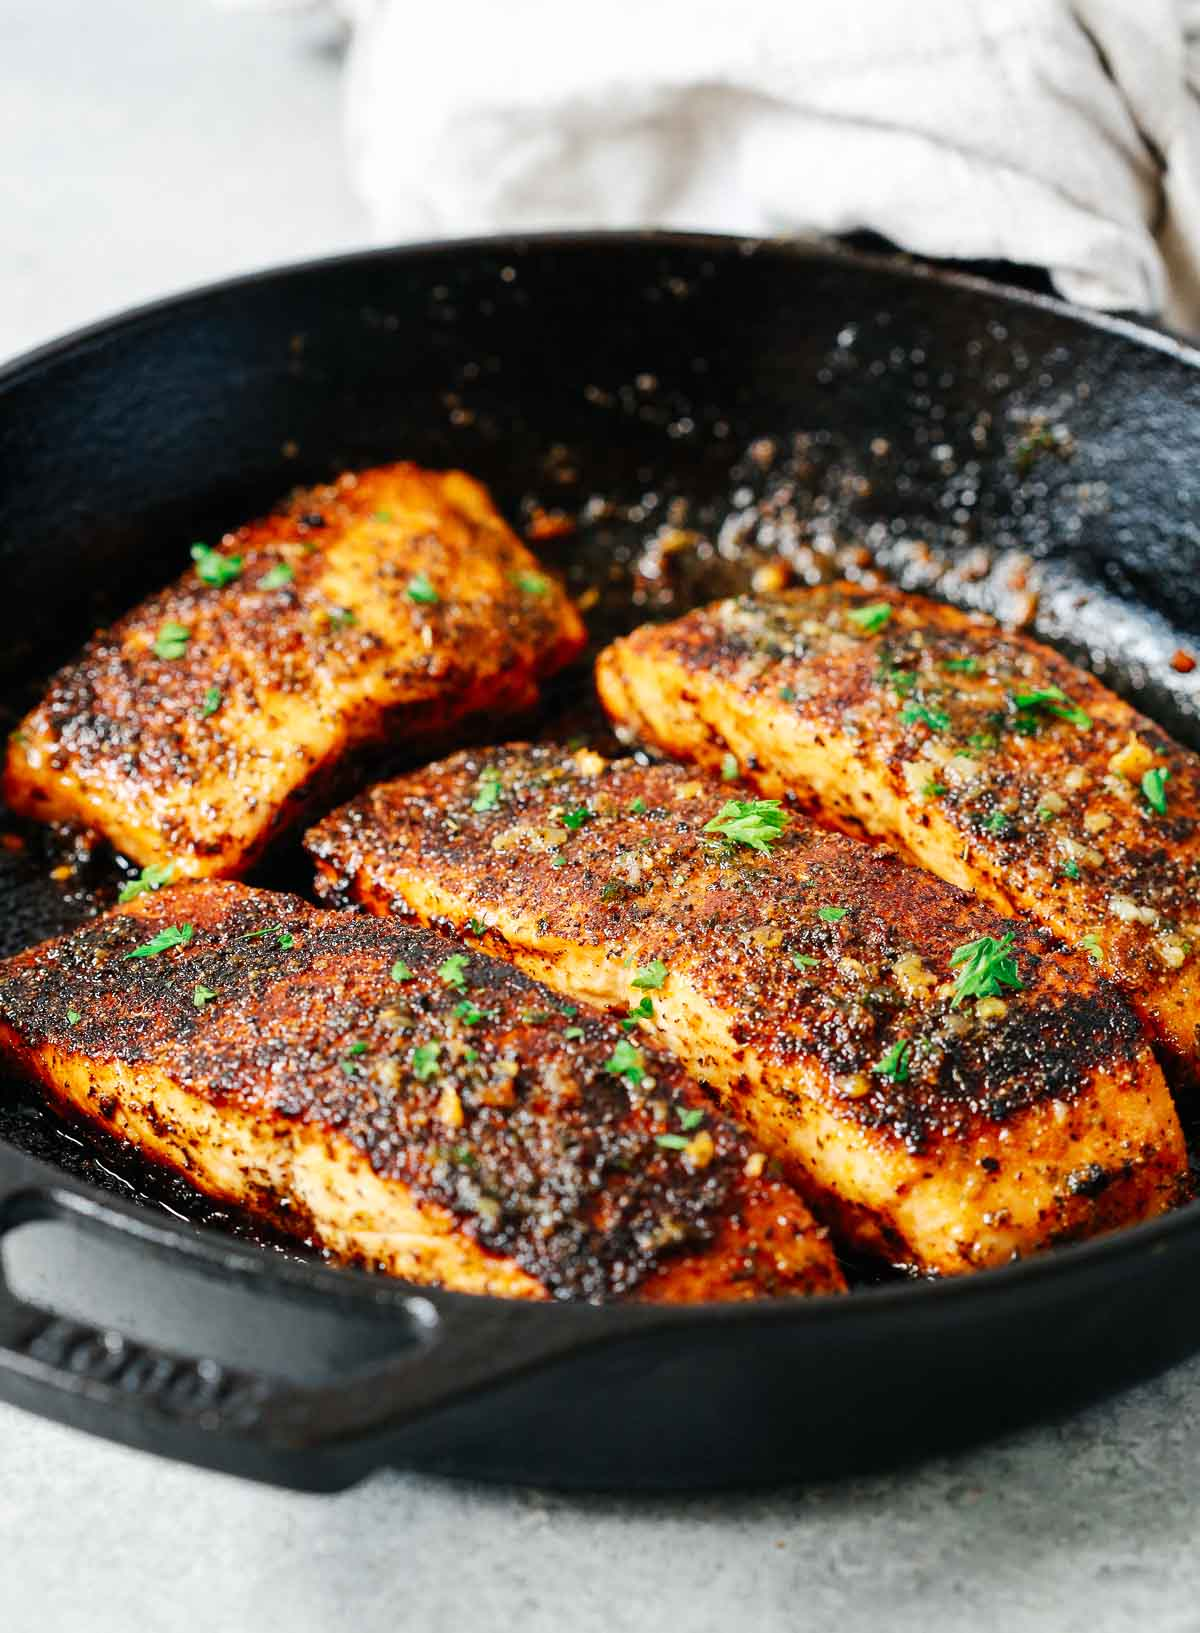 cooking four heavily seasoned fish fillets in a cast iron skillet